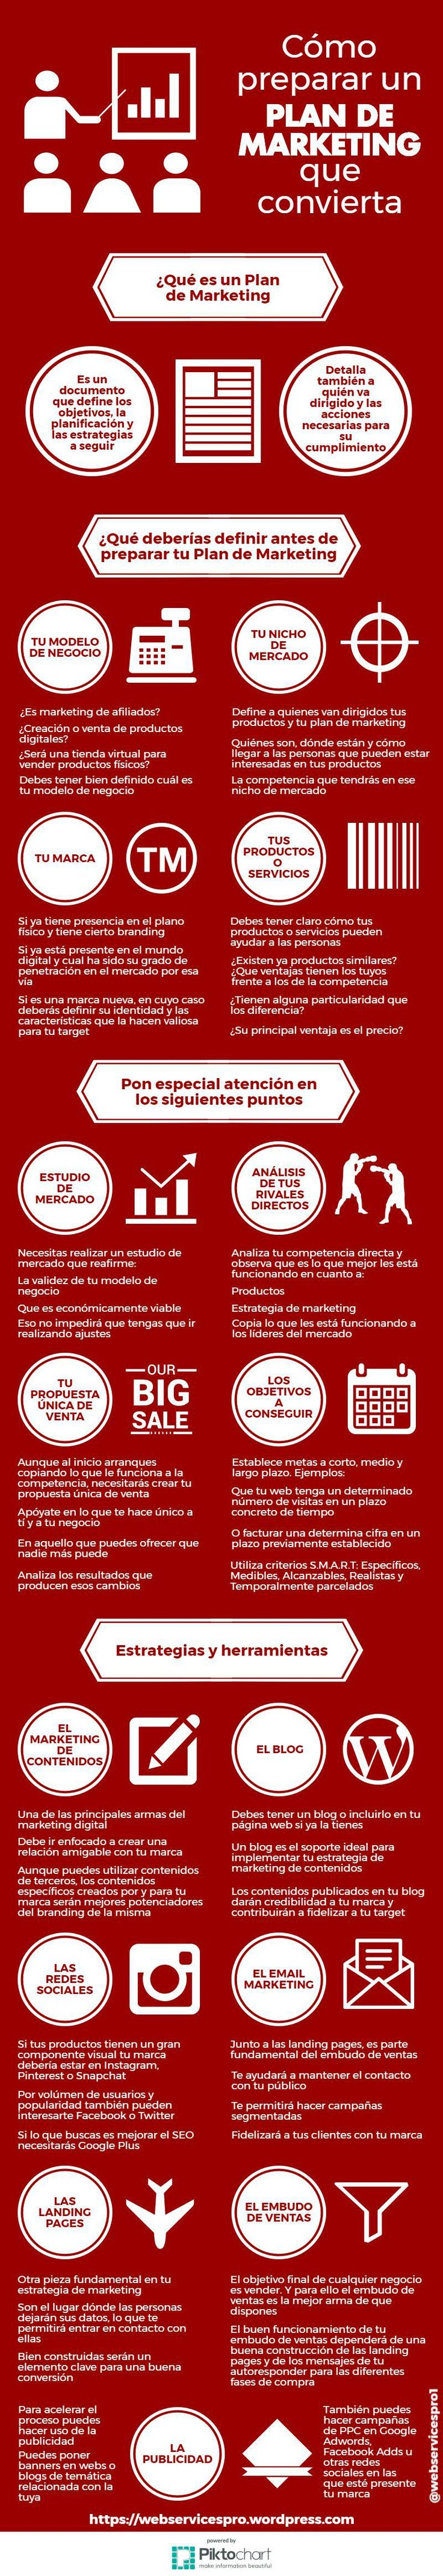 Cómo preparar un Plan de Marketing que funcione #infografia